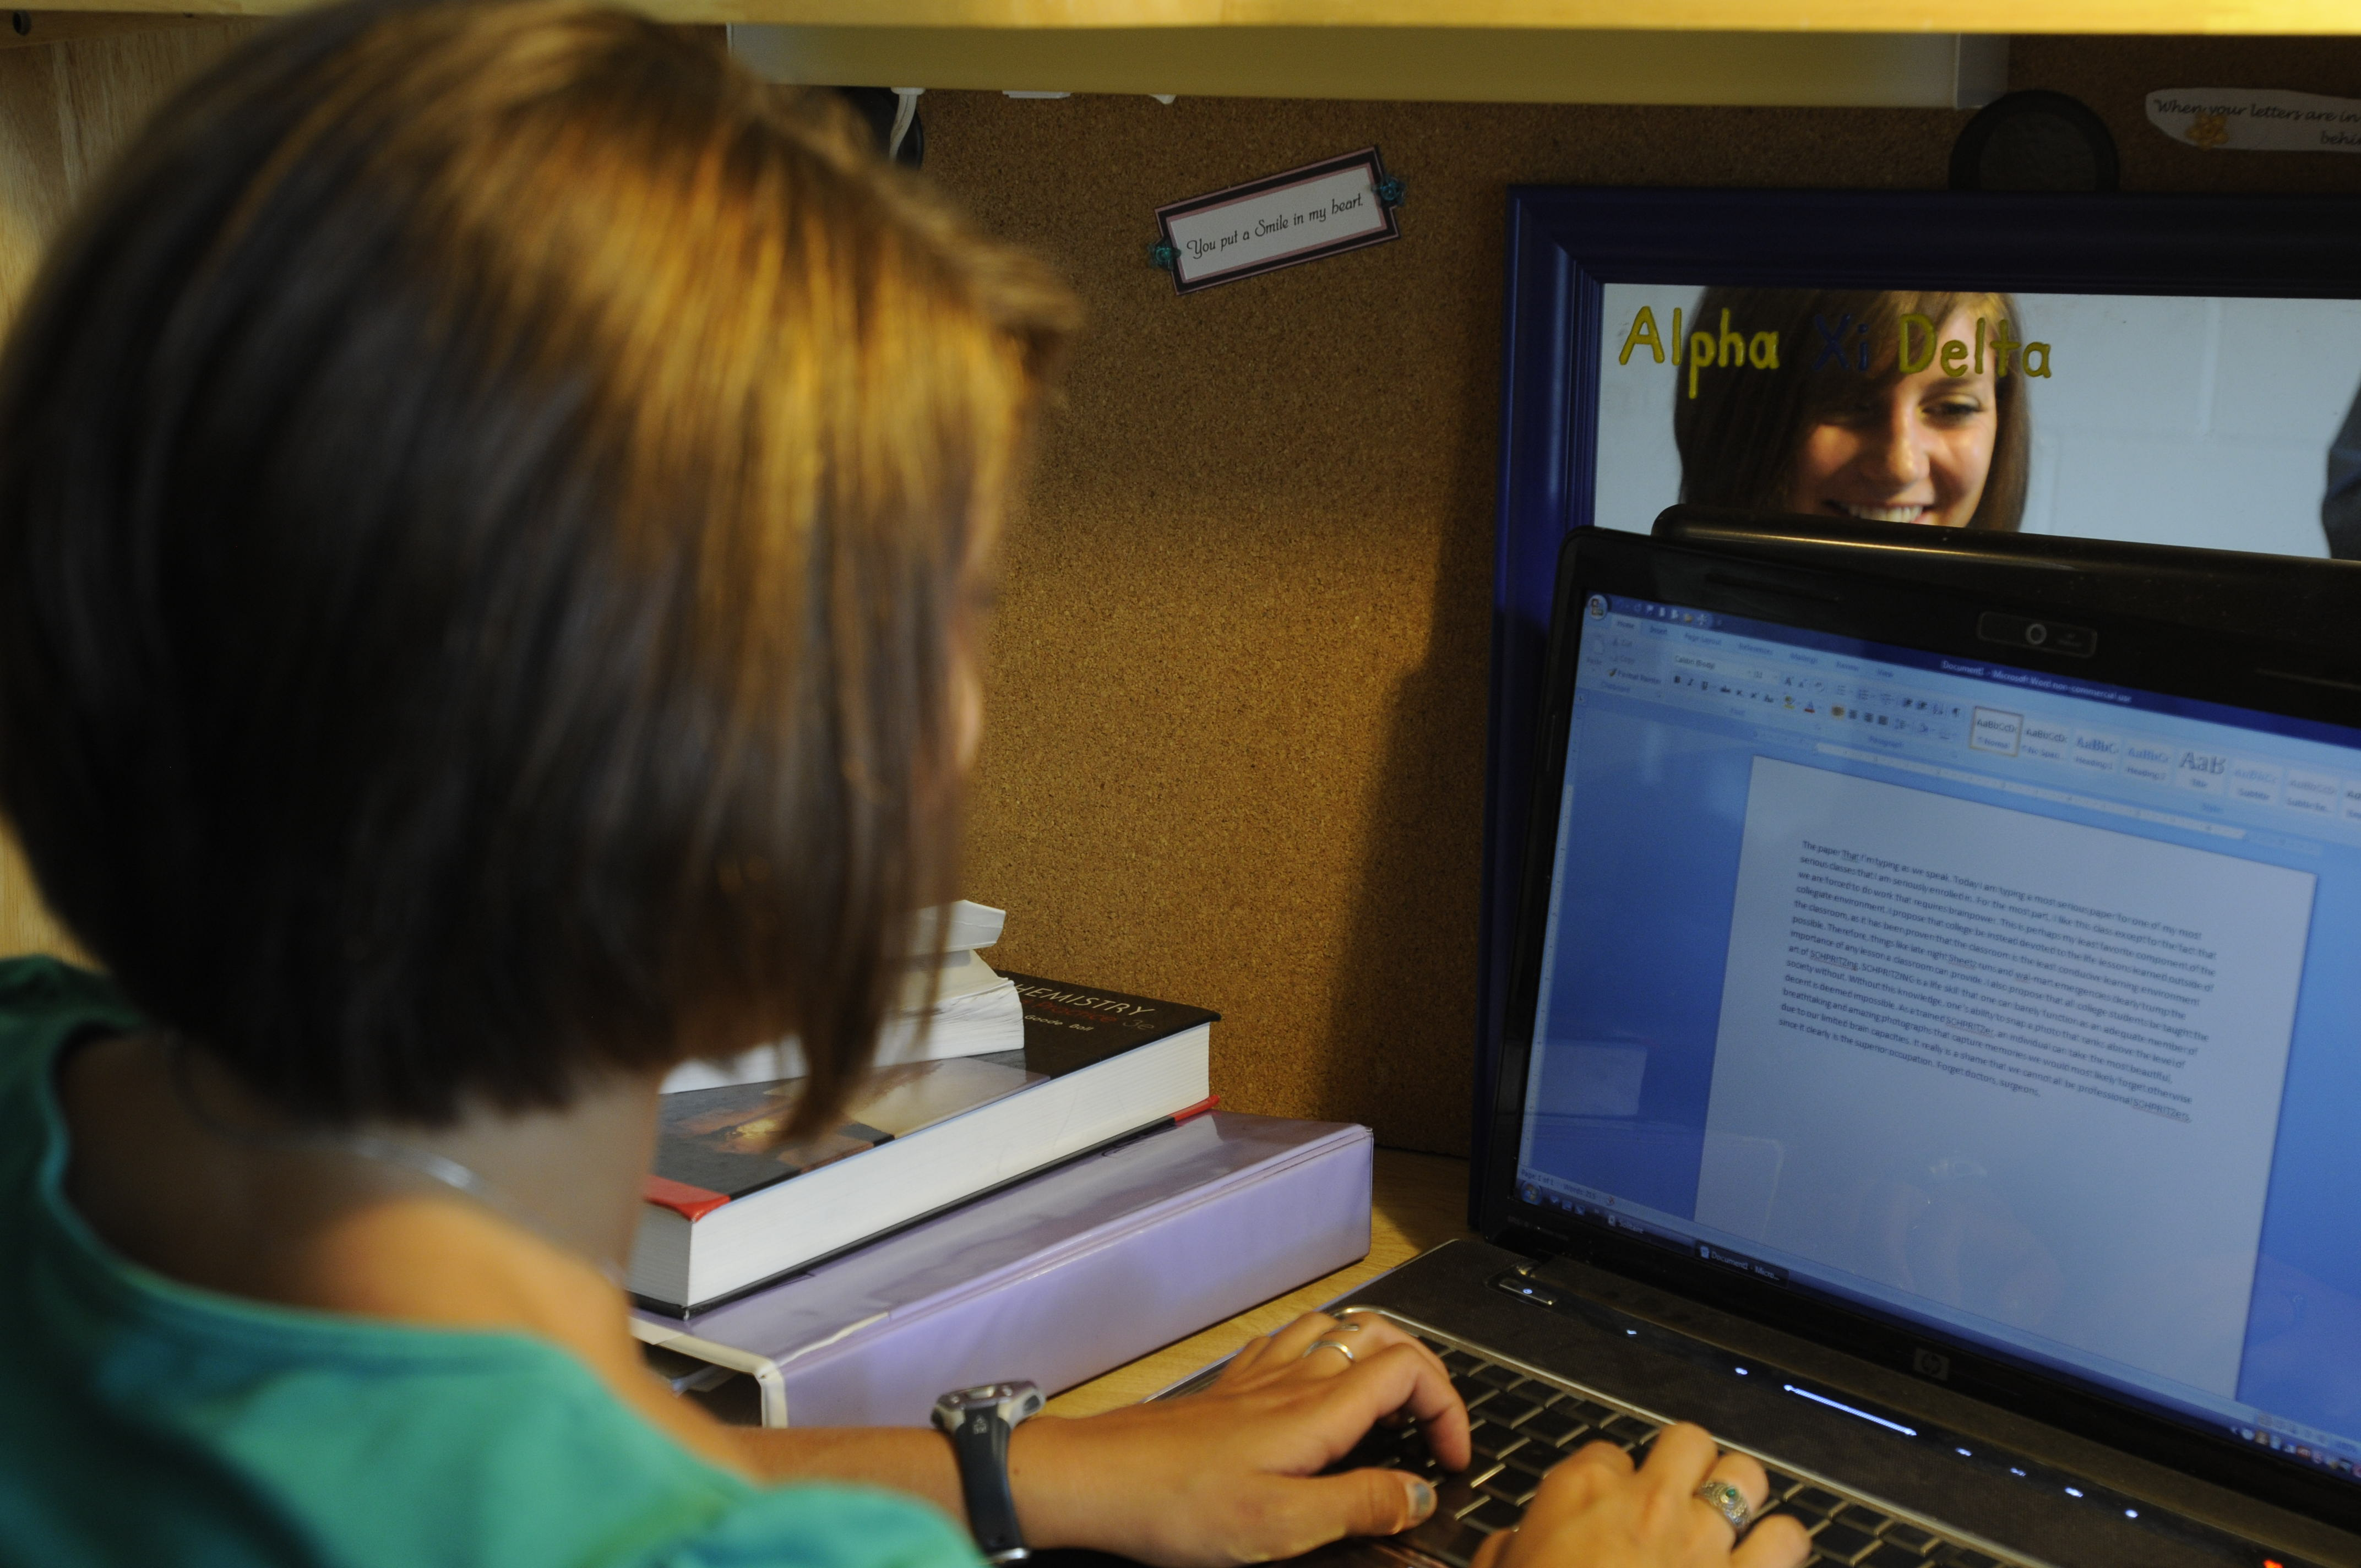 Student on laptop in residence hall room